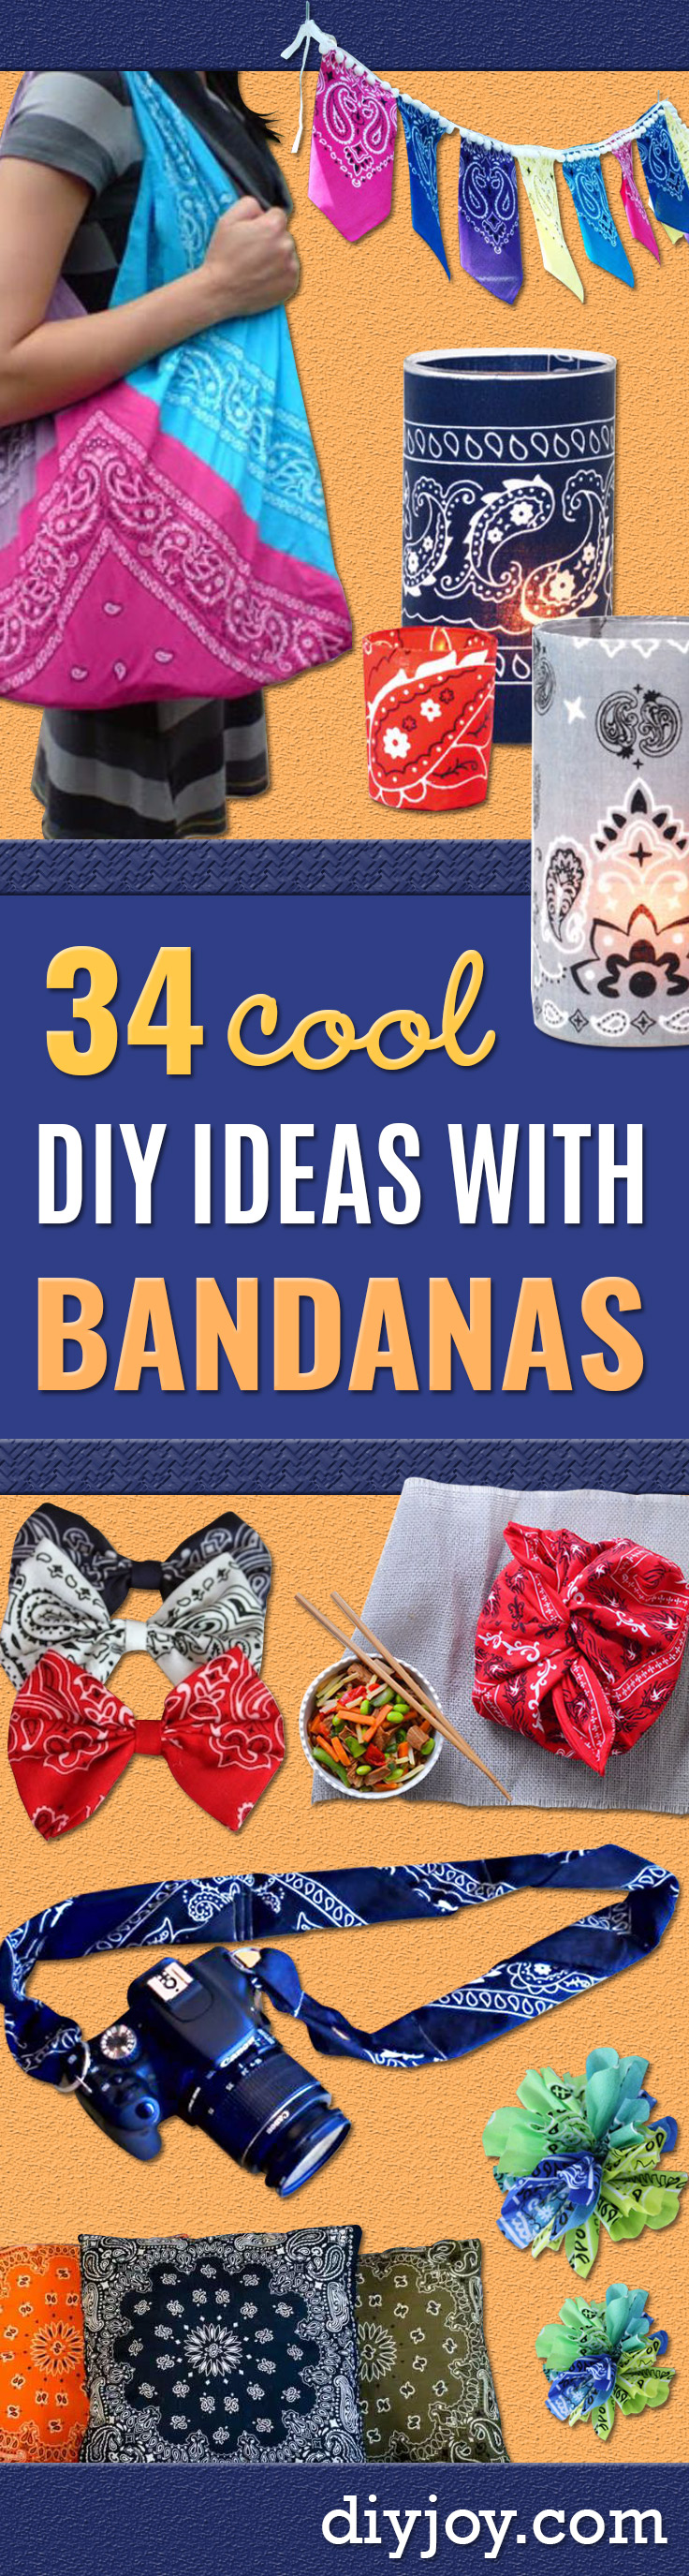 DIY Ideas With Bandanas - Bandana Crafts and Decor Projects Made With A Bandana - No Sew Ideas, Bags, Bracelets, Hats, Halter Tops, Blankets and Quilts, Headbands, Simple Craft Project Tutorials for Kids and Teens - Home Decoration and Country Themed Crafts To Make and Sell On Etsy